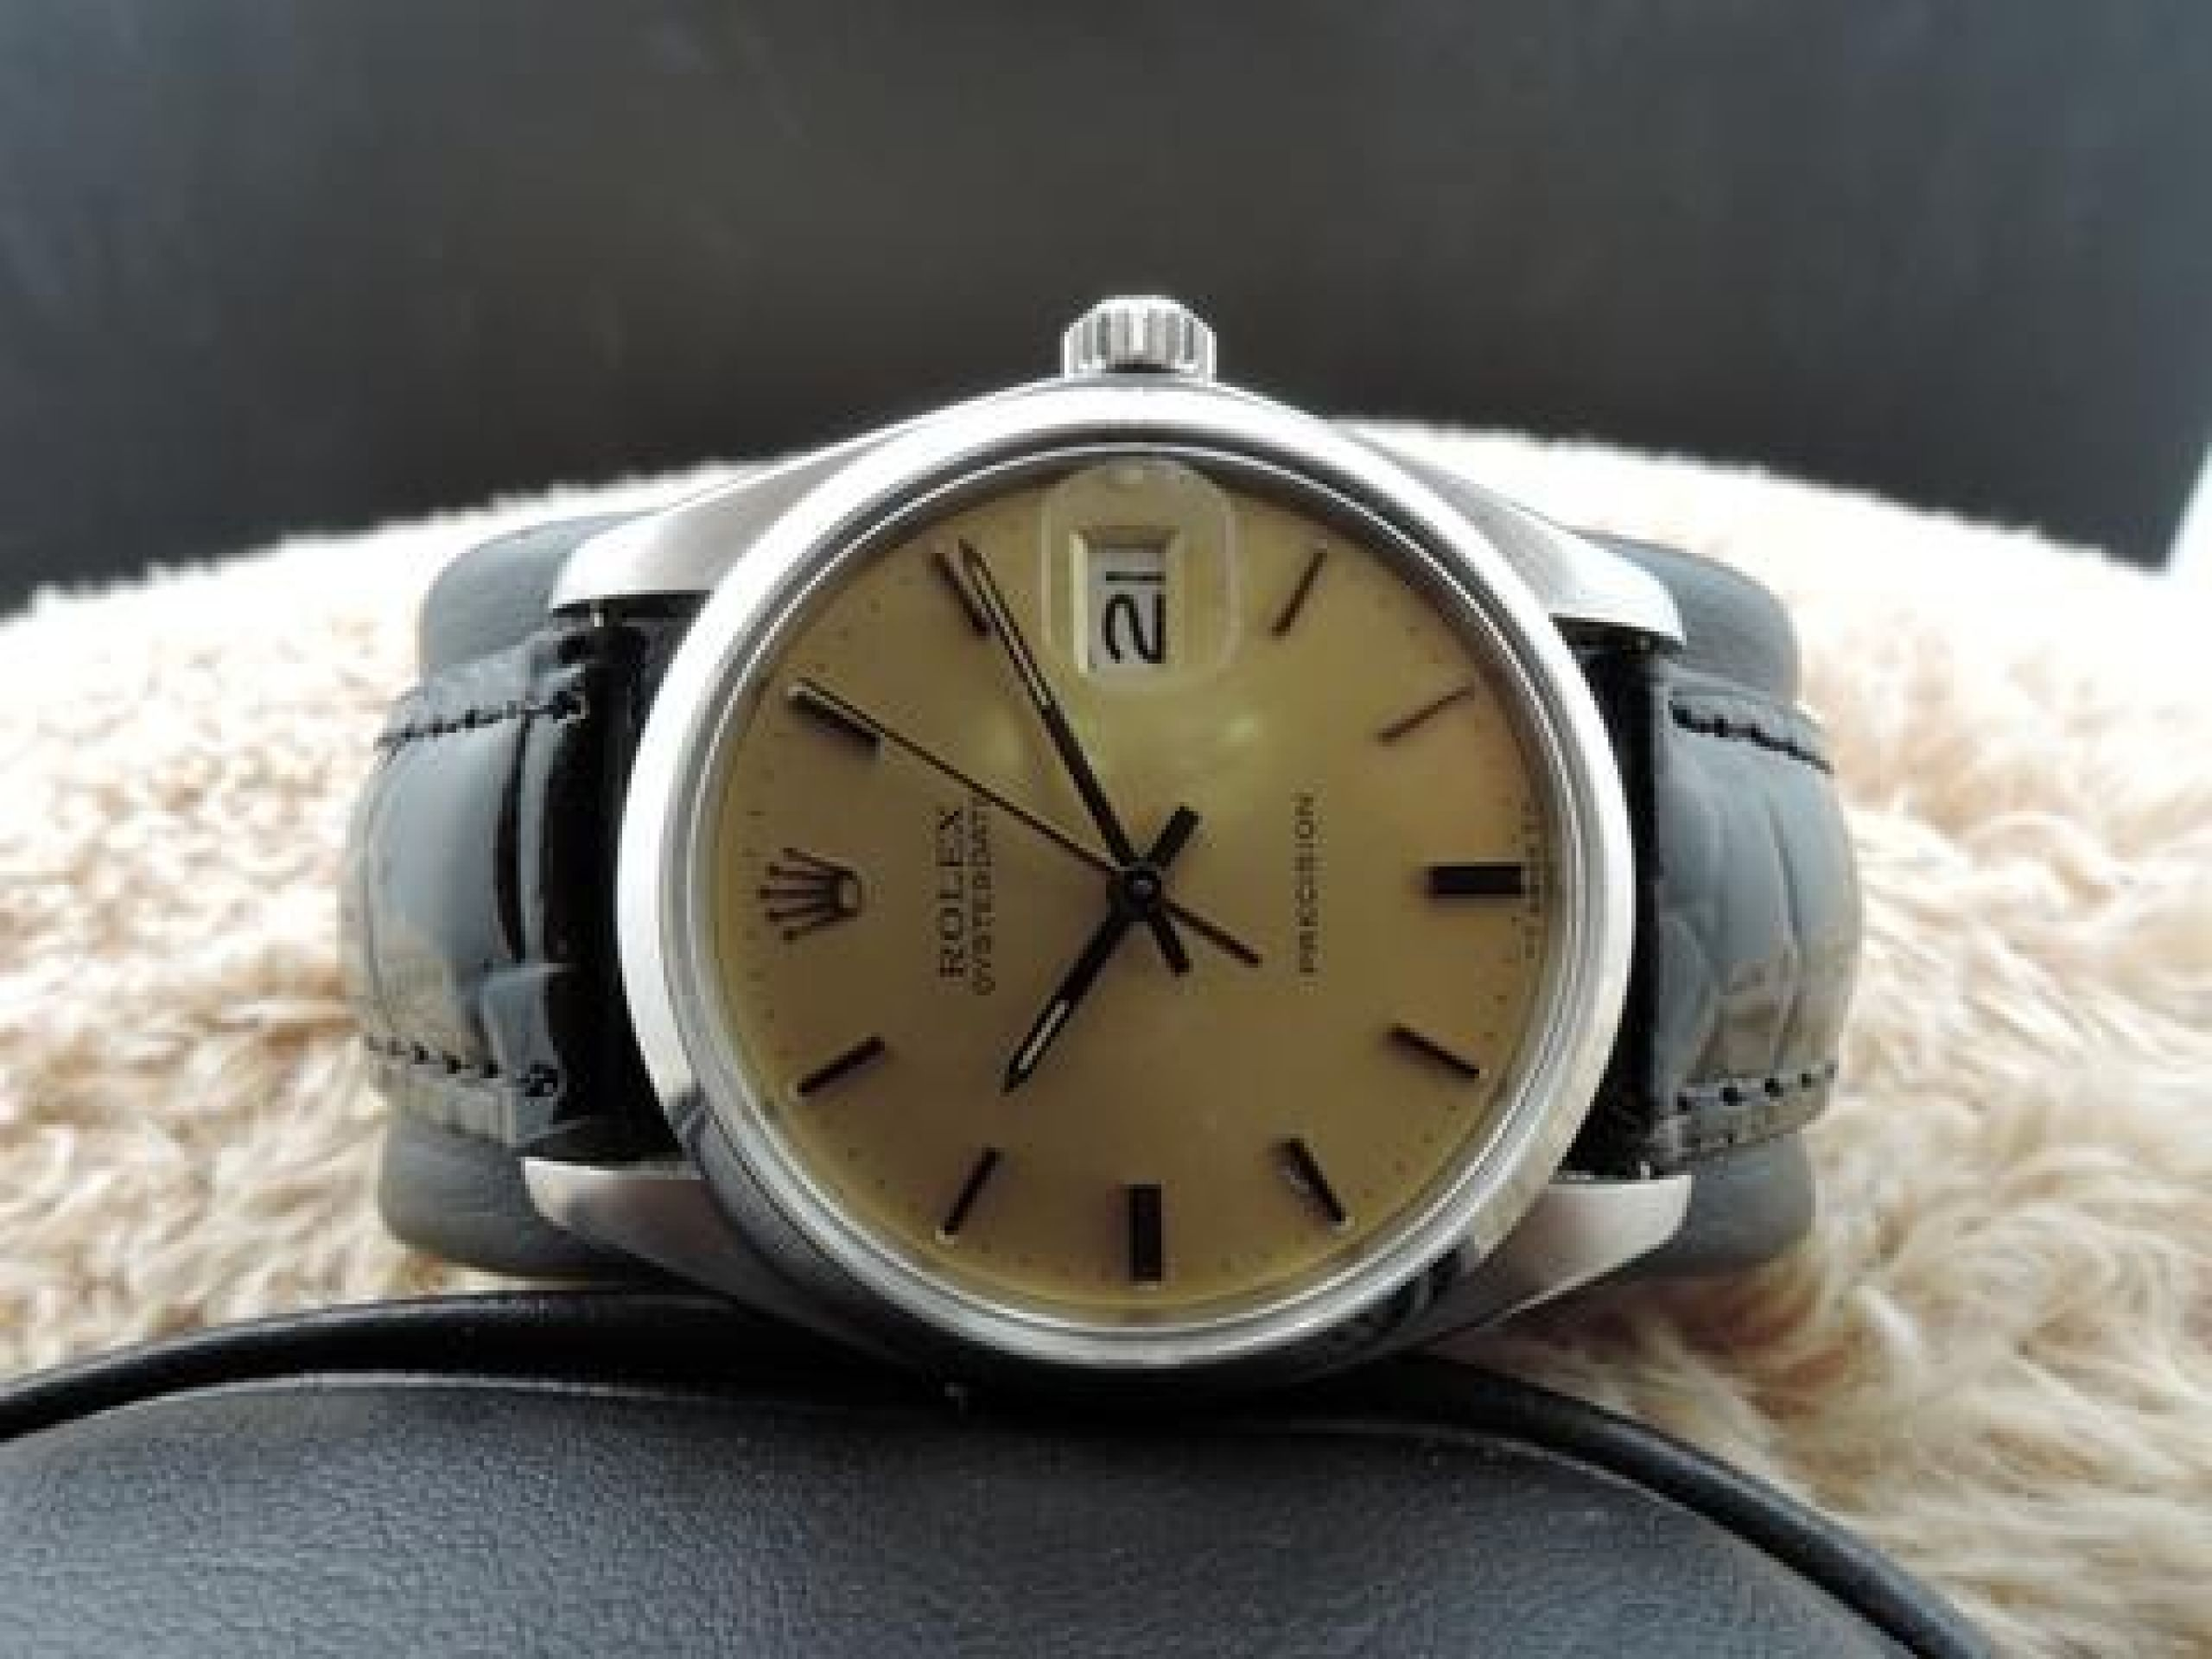 1975 ROLEX OYSTER DATE 6694 ORIGINAL GOLD DIAL WITH GOLD HANDS